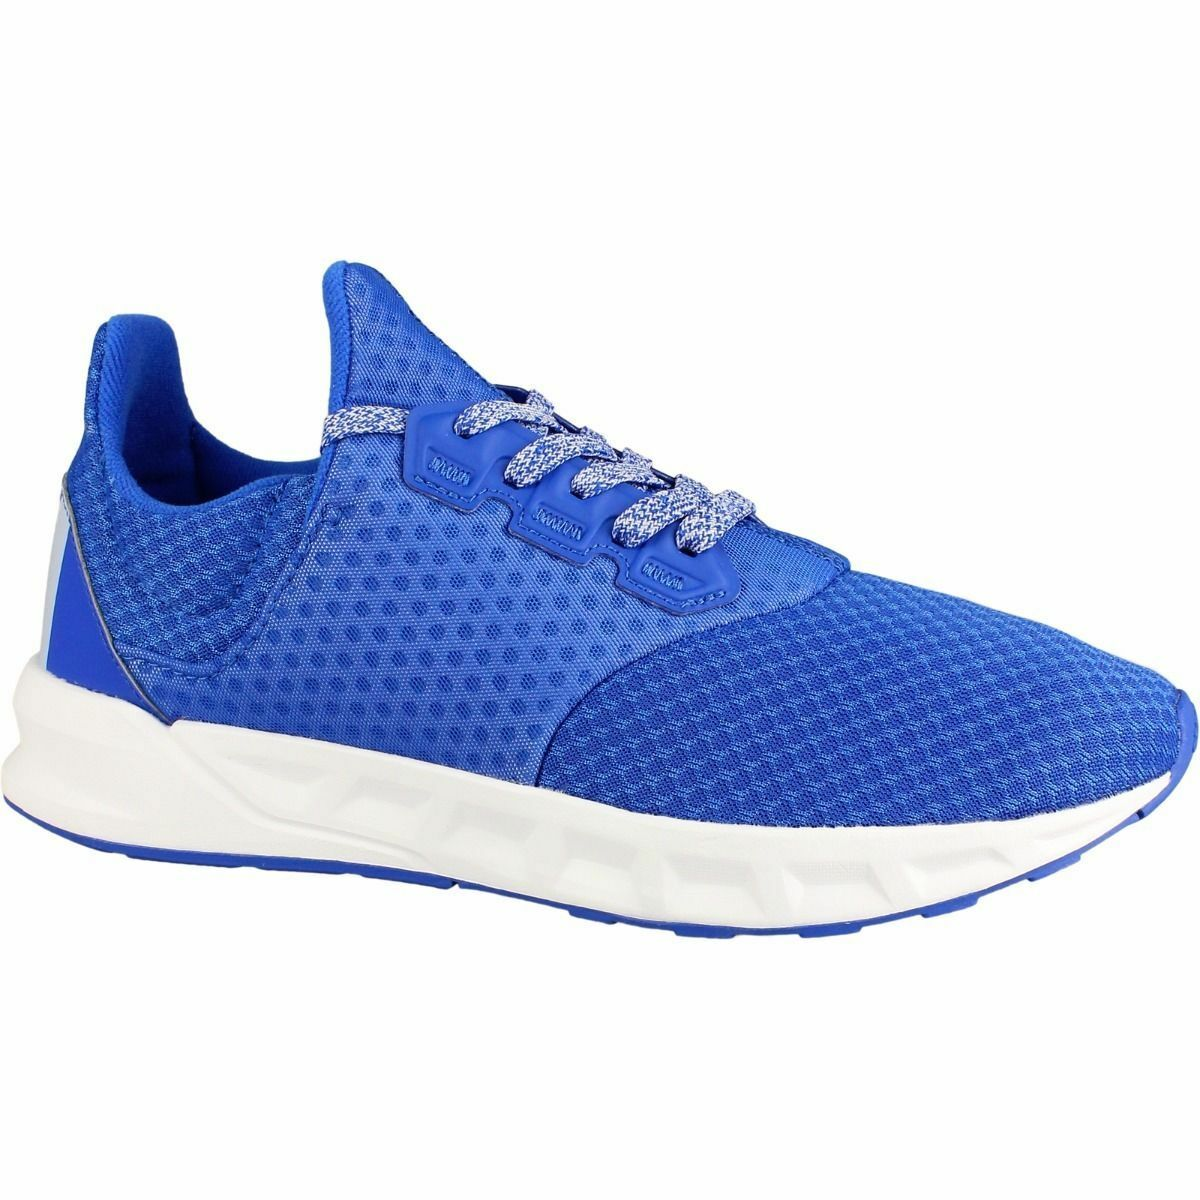 6210b531739fd Men's Adidas Performance Falcon Elite 5 m Running Training Sneakers Blue  BB4401